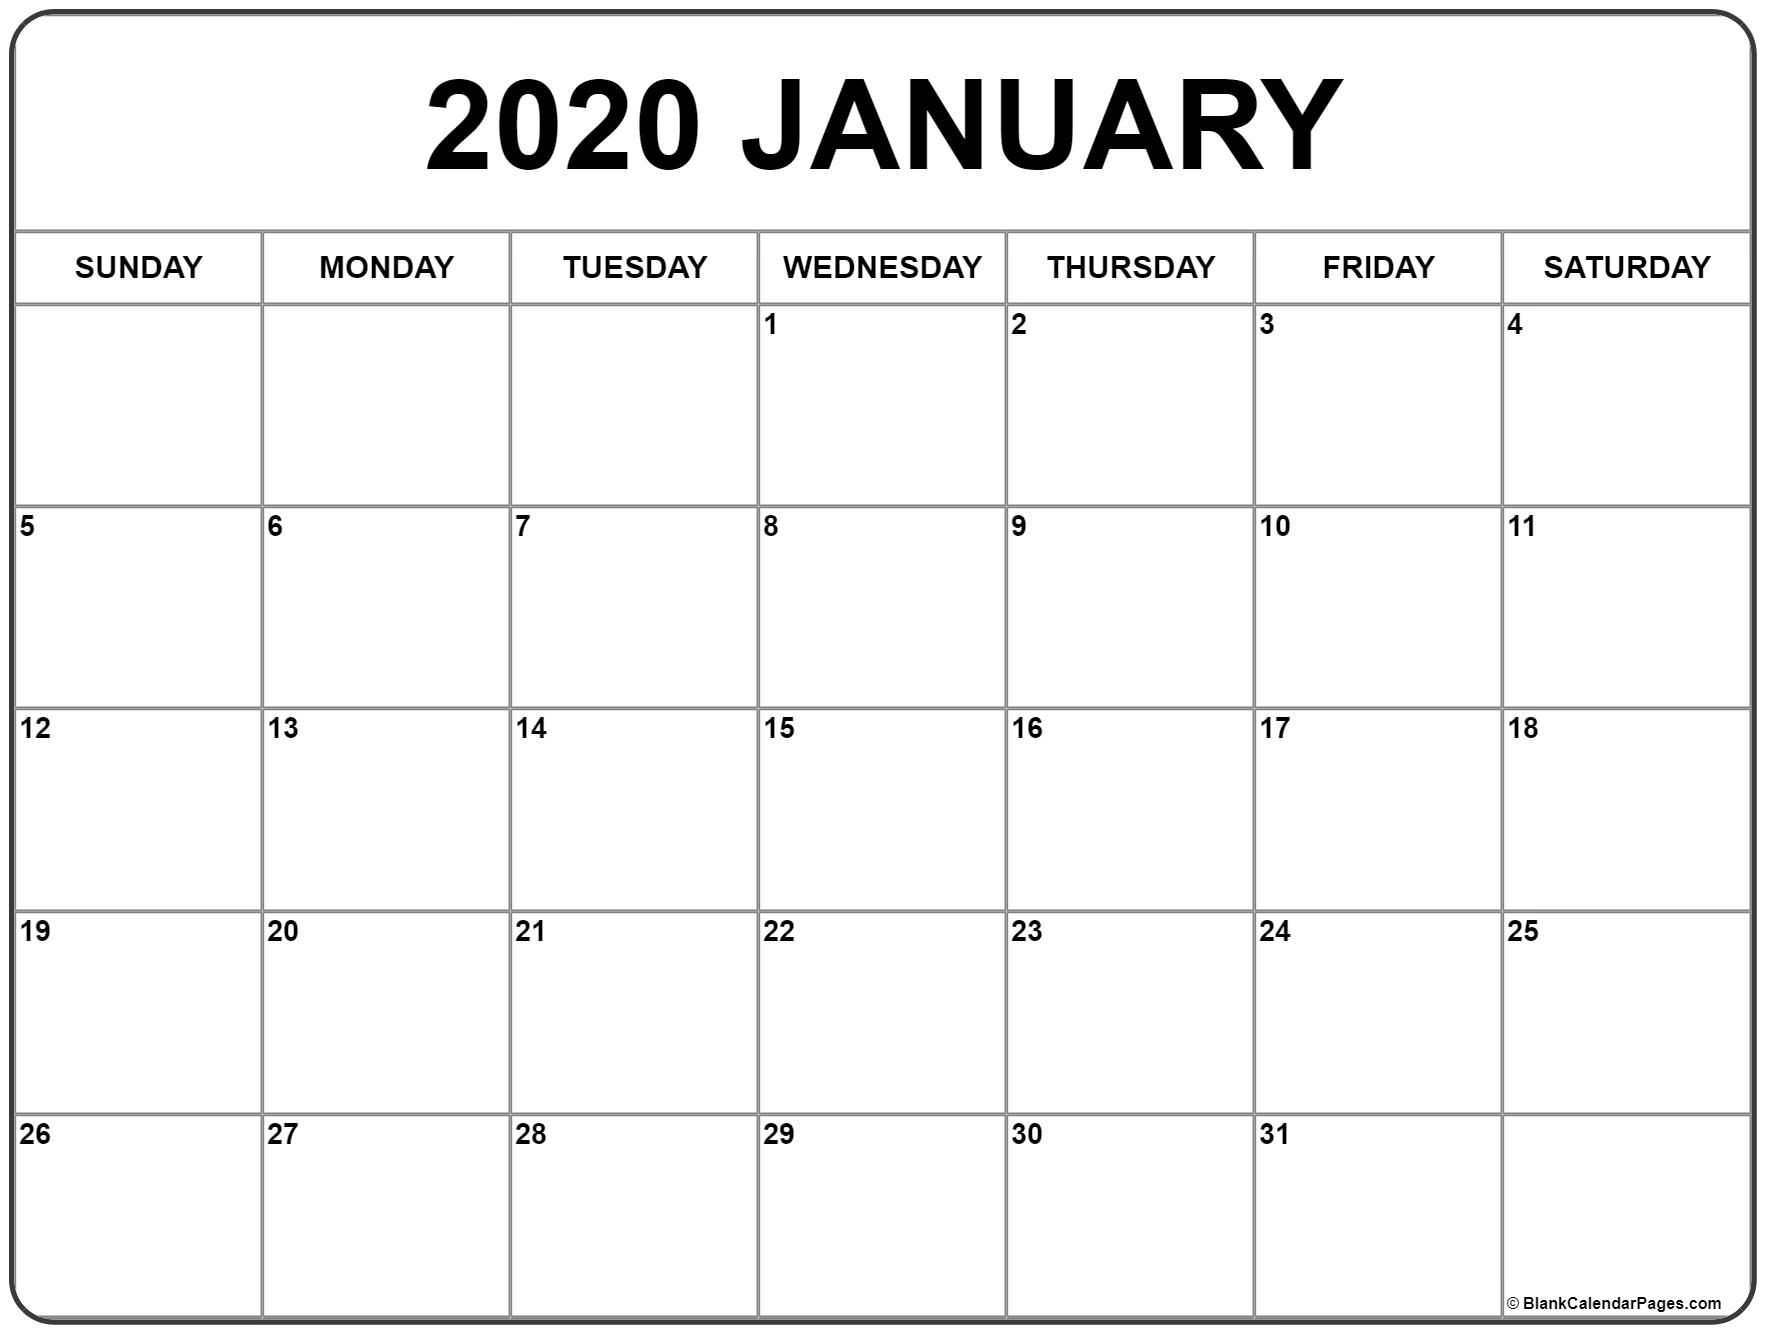 January 2020 Calendar | Free Printable Monthly Calendars-January 2020 Calendar Printable